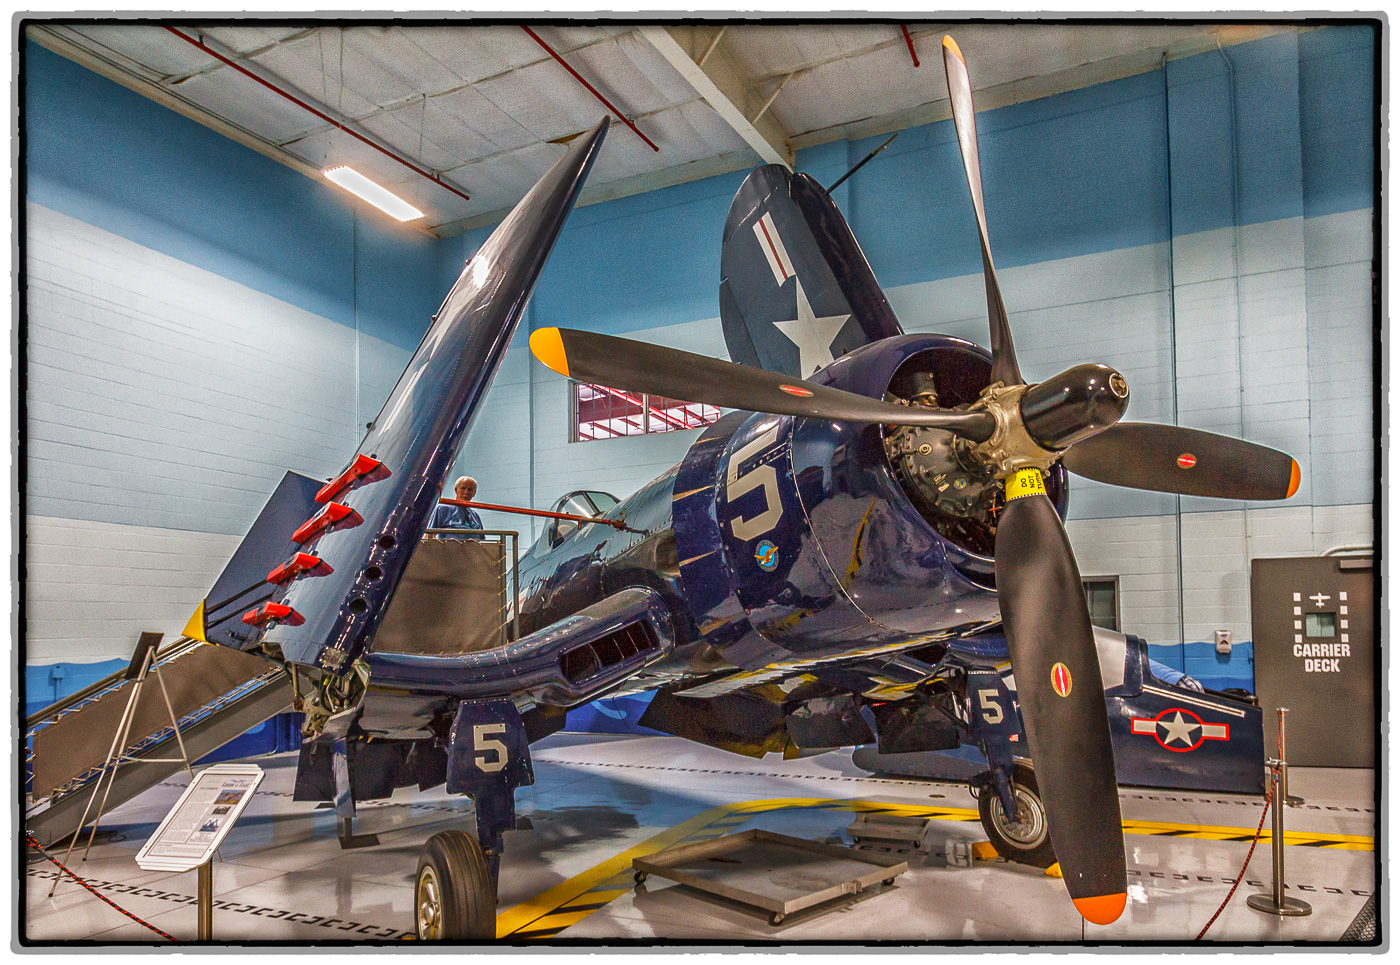 1945 Chance-Vought F4U-4 Corsair